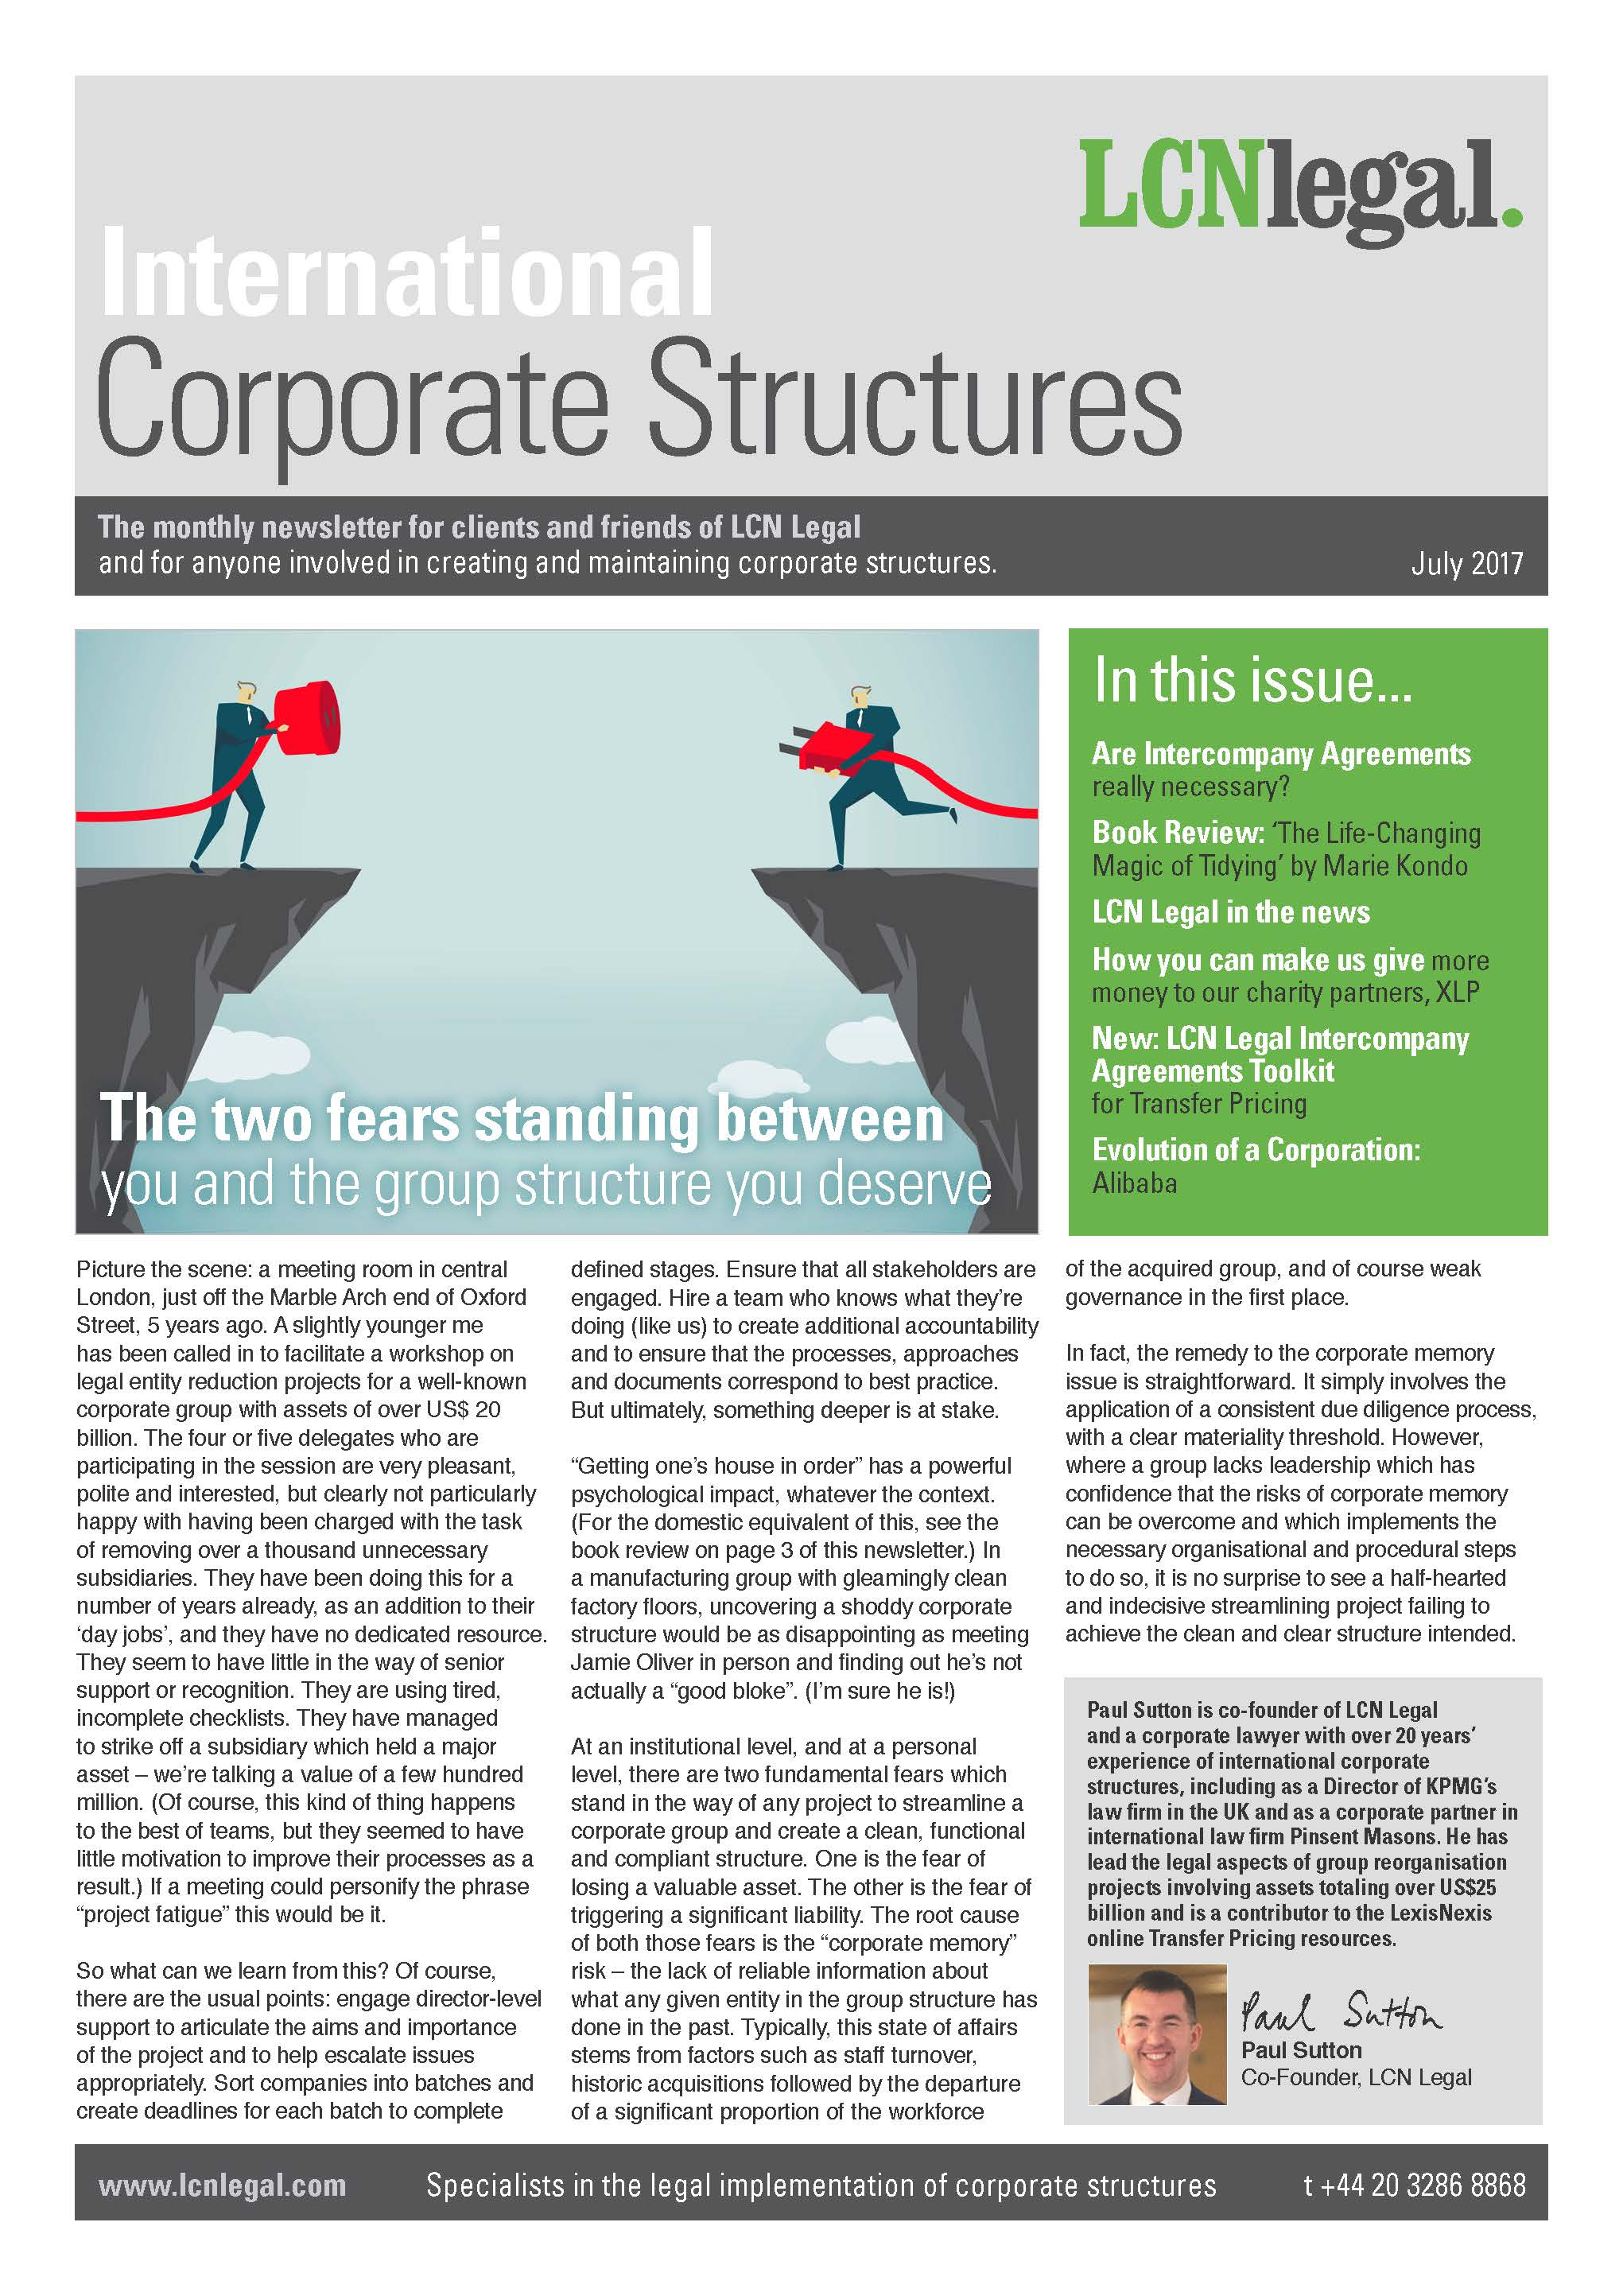 International Corporate Structures Newsletter - July 2017